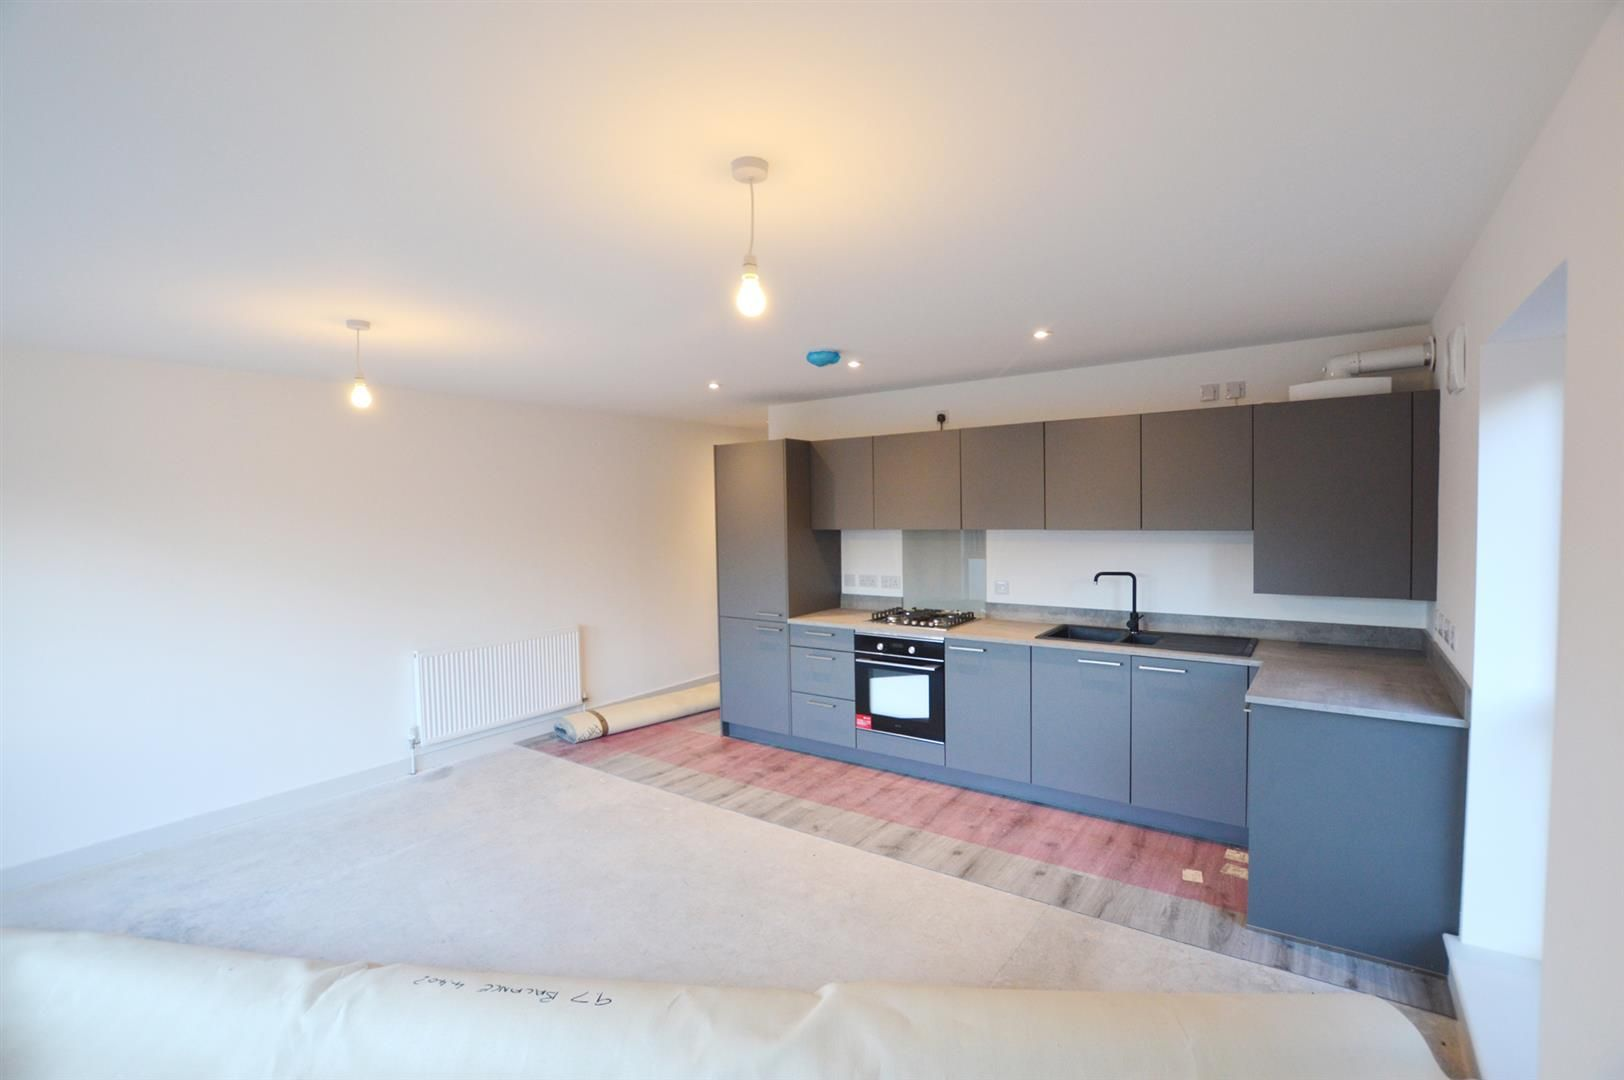 2 bed apartment for sale in Leominster 5